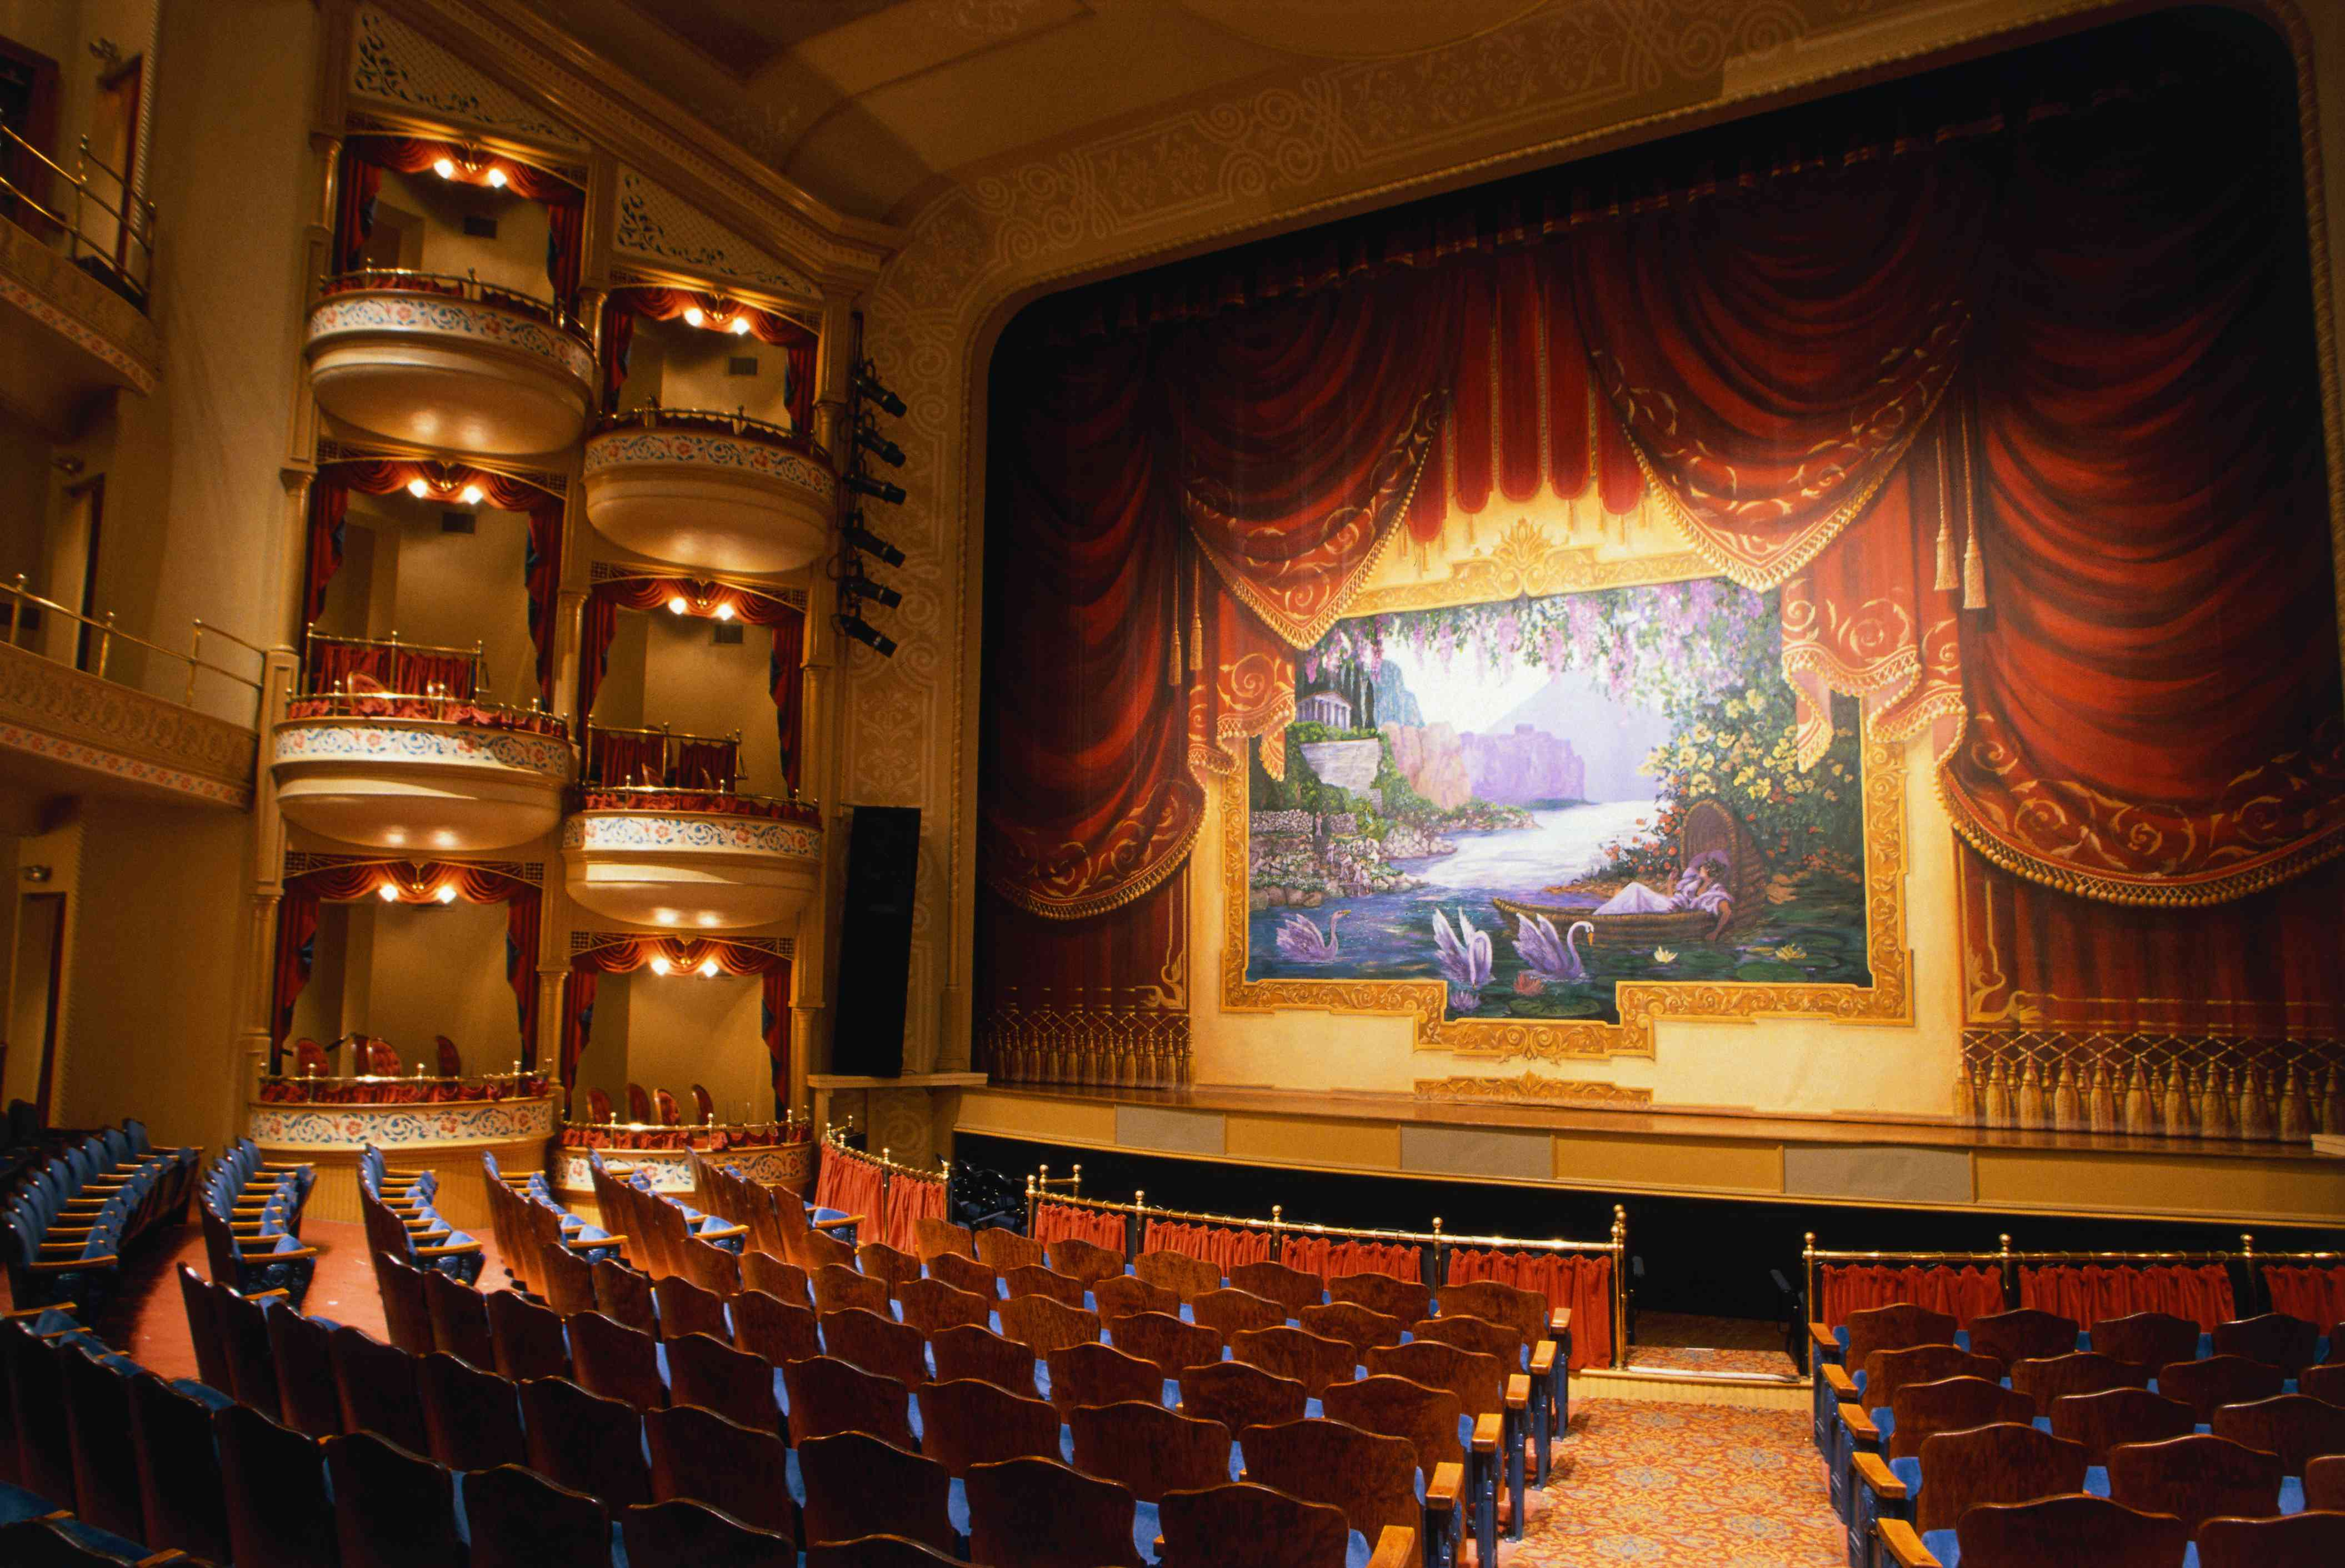 Seating and Stage in the Galveston Historic Grand Opera House